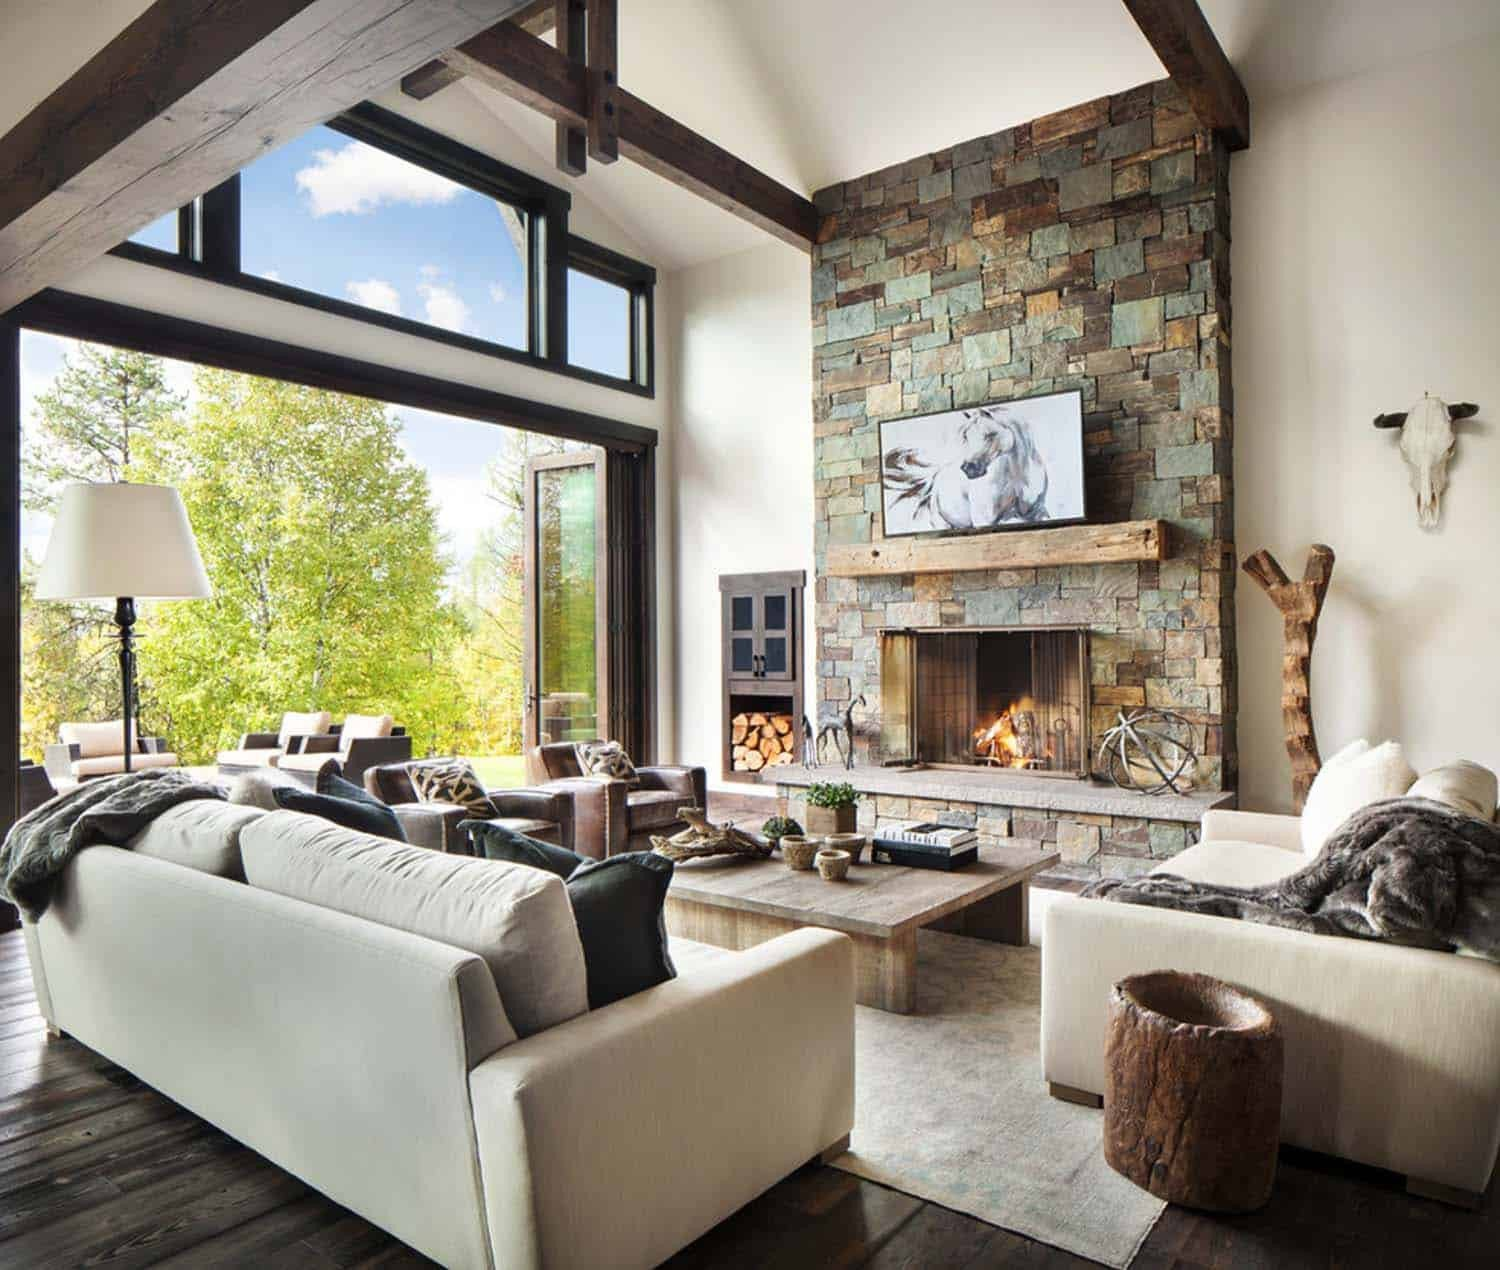 Modern Rustic Decor Living Room Rustic Modern Dwelling Nestled In the northern Rocky Mountains